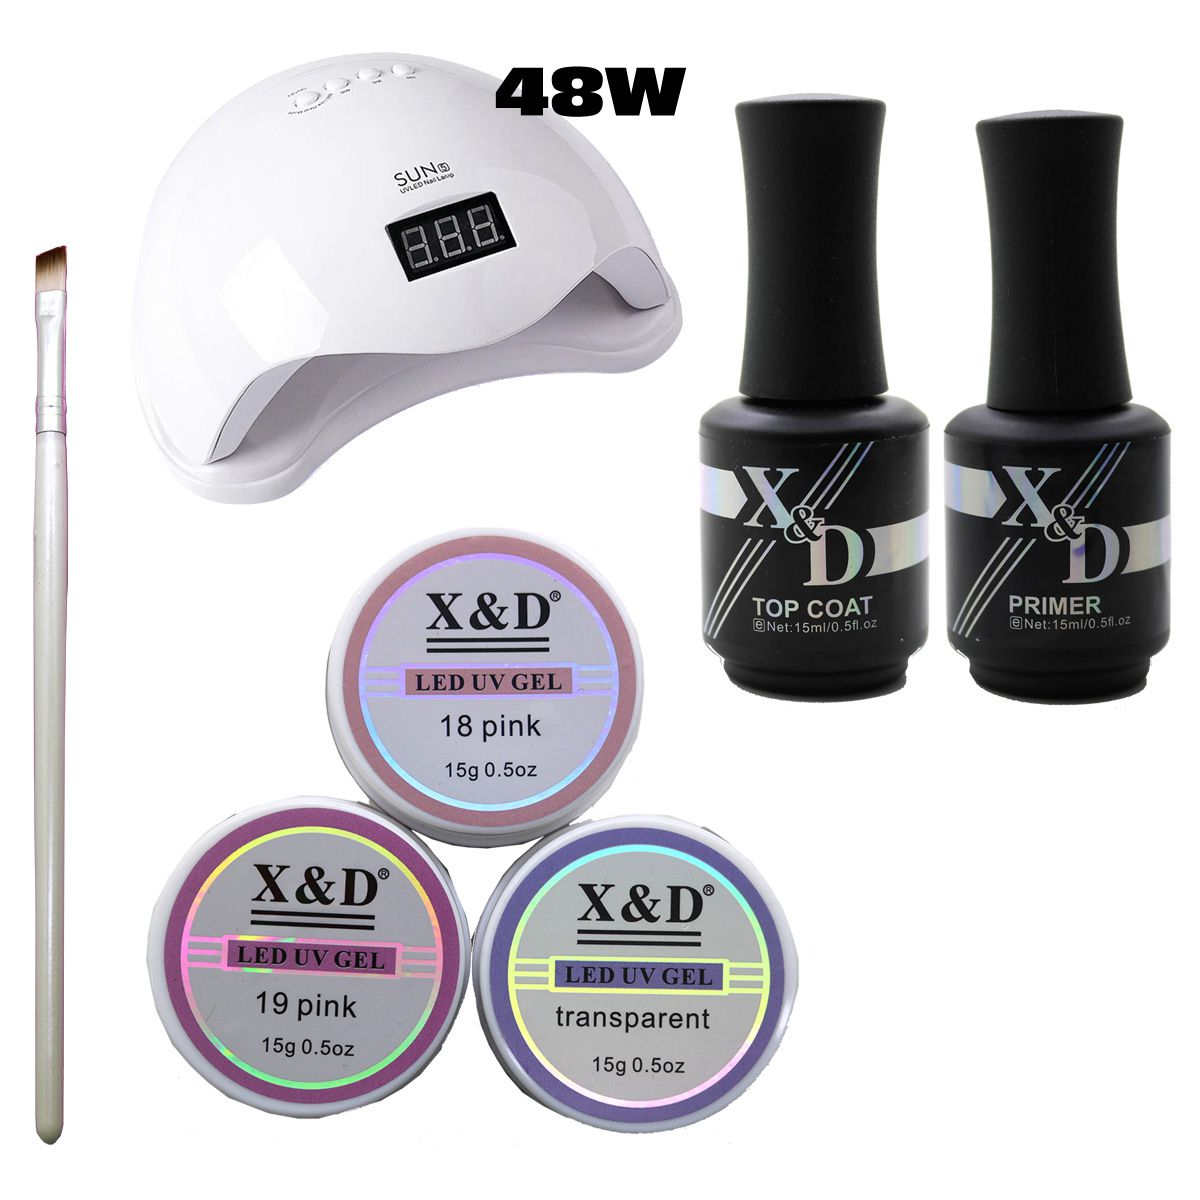 Kit Unha Gel Acrigel Led UV Sun 5 48W Top Coat Primer 577XD